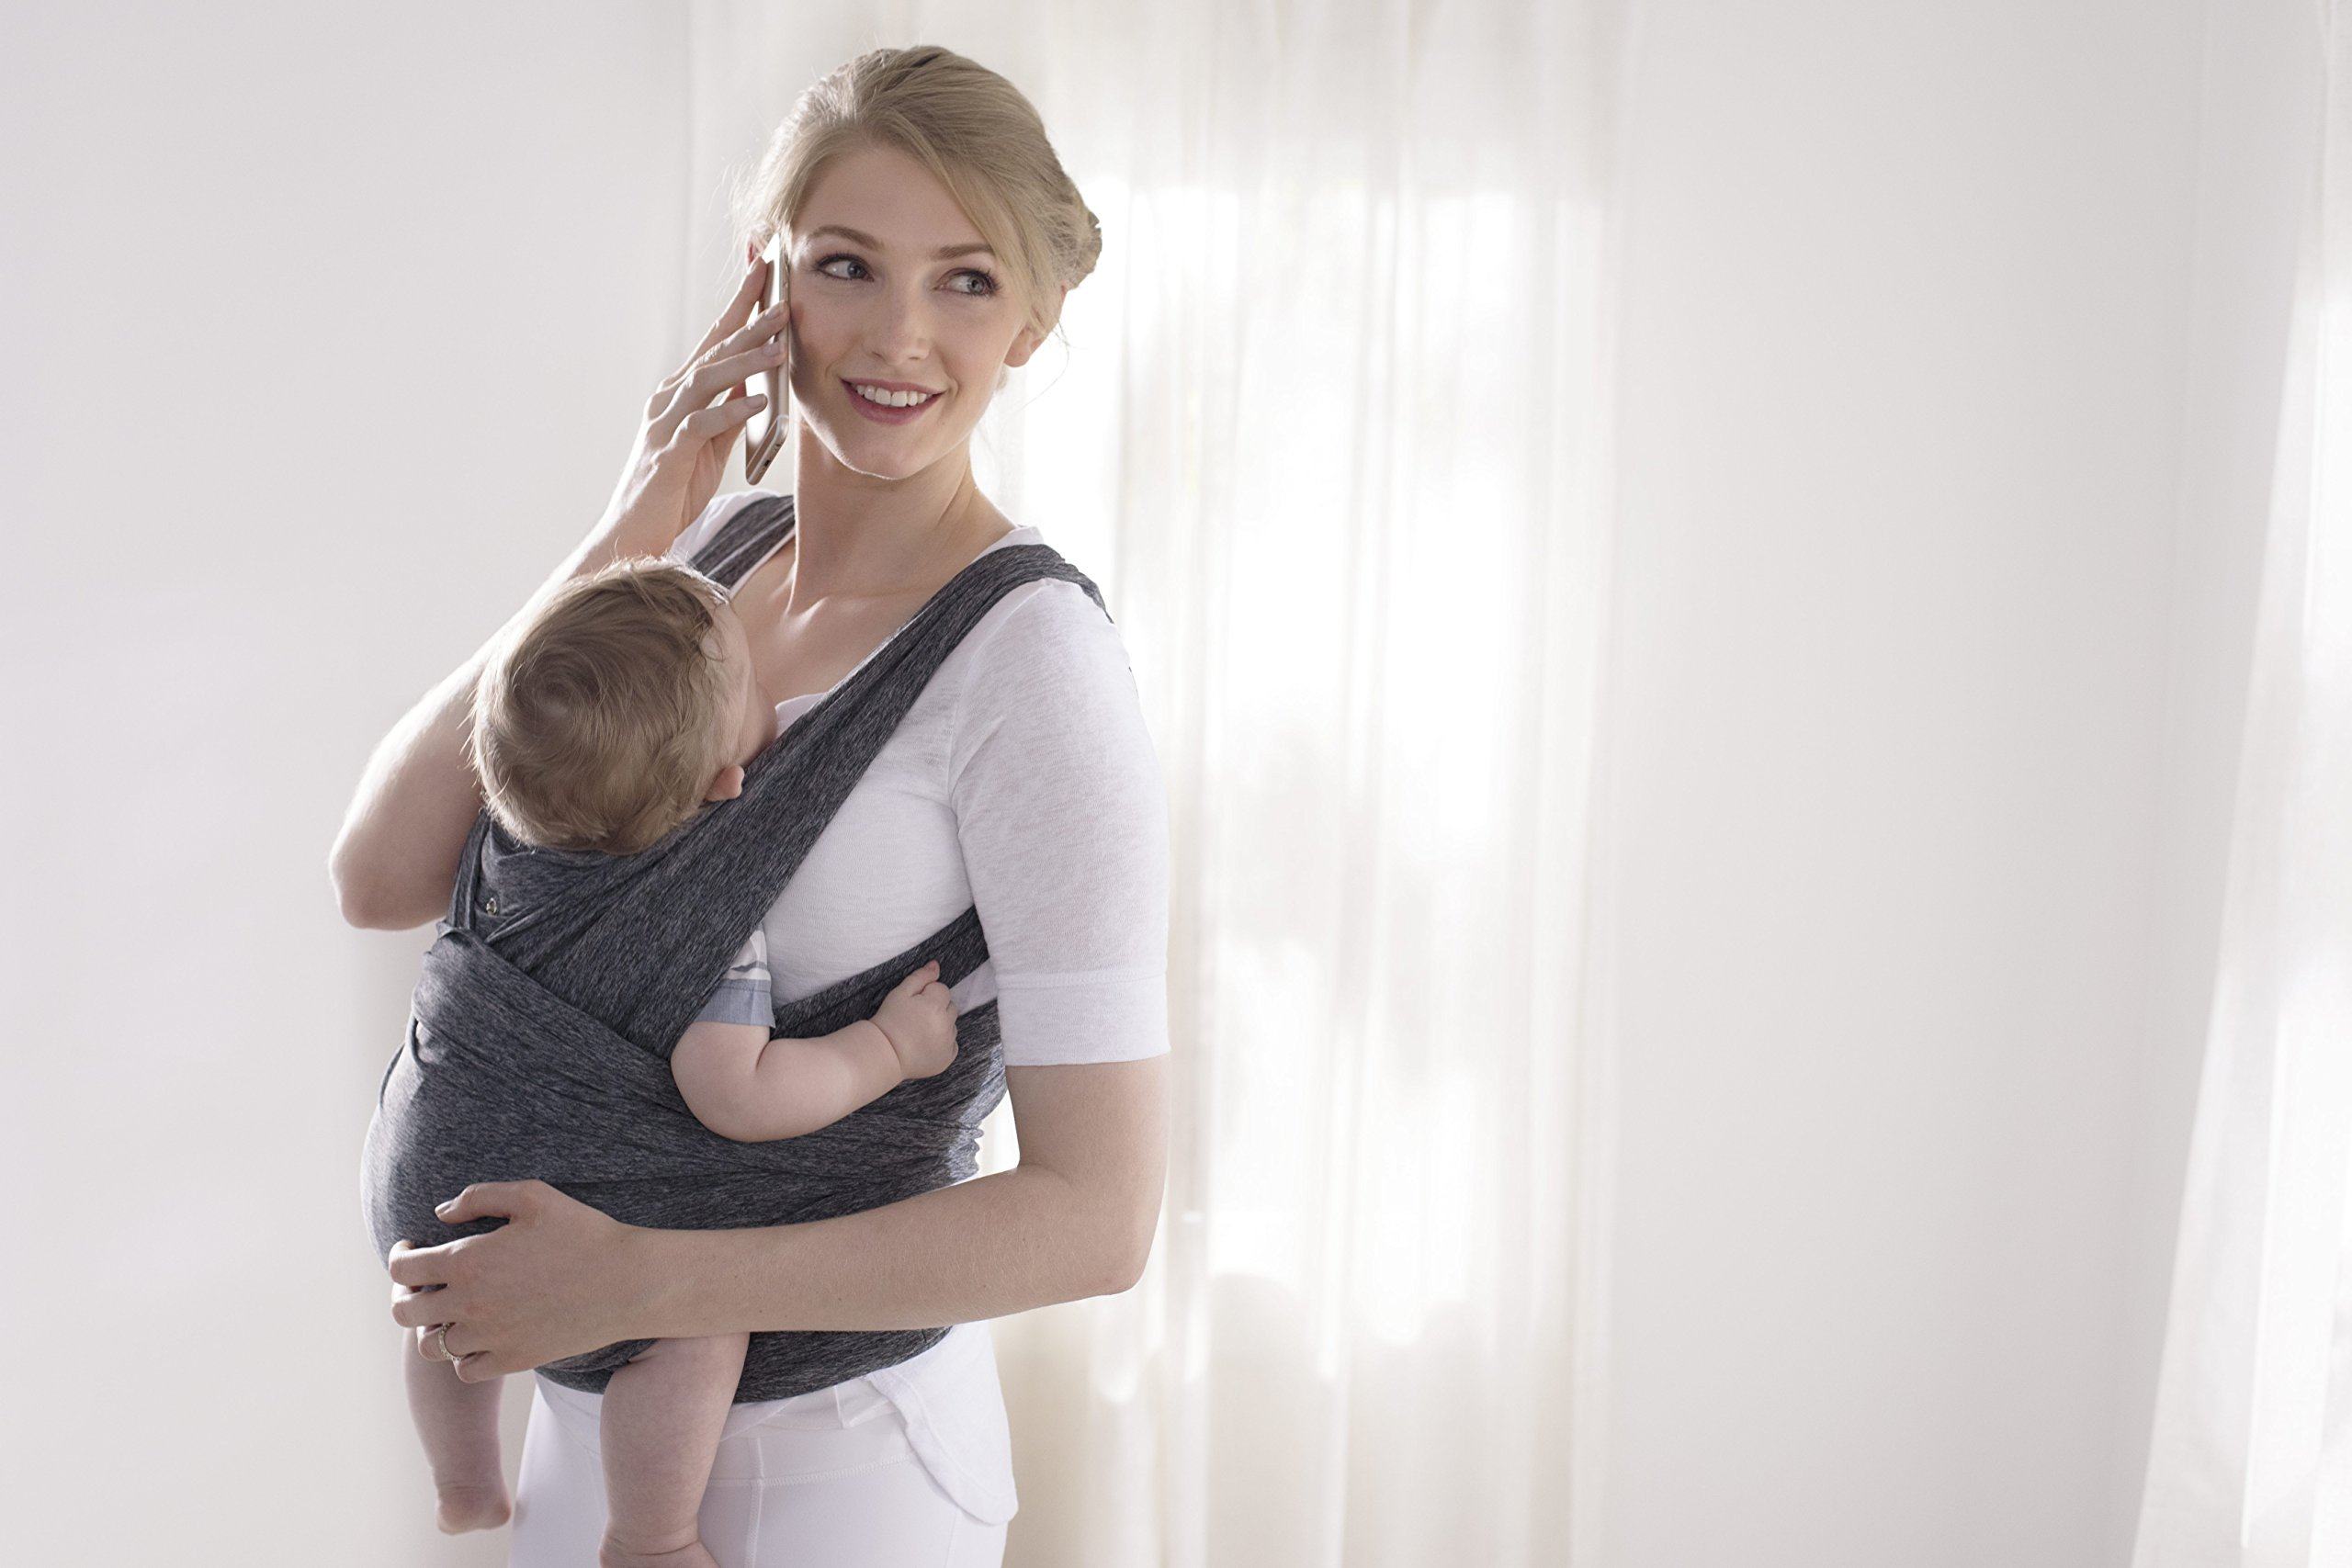 Chicco ComfyFit Baby Carrier One size Chicco Perfect fit, no infant insert required; recommended baby weight: 8-35lbs One size fits most, which makes sharing your carrier between caregivers quick and easy 2 comfy carrying positions: front face-in and front face-out 6